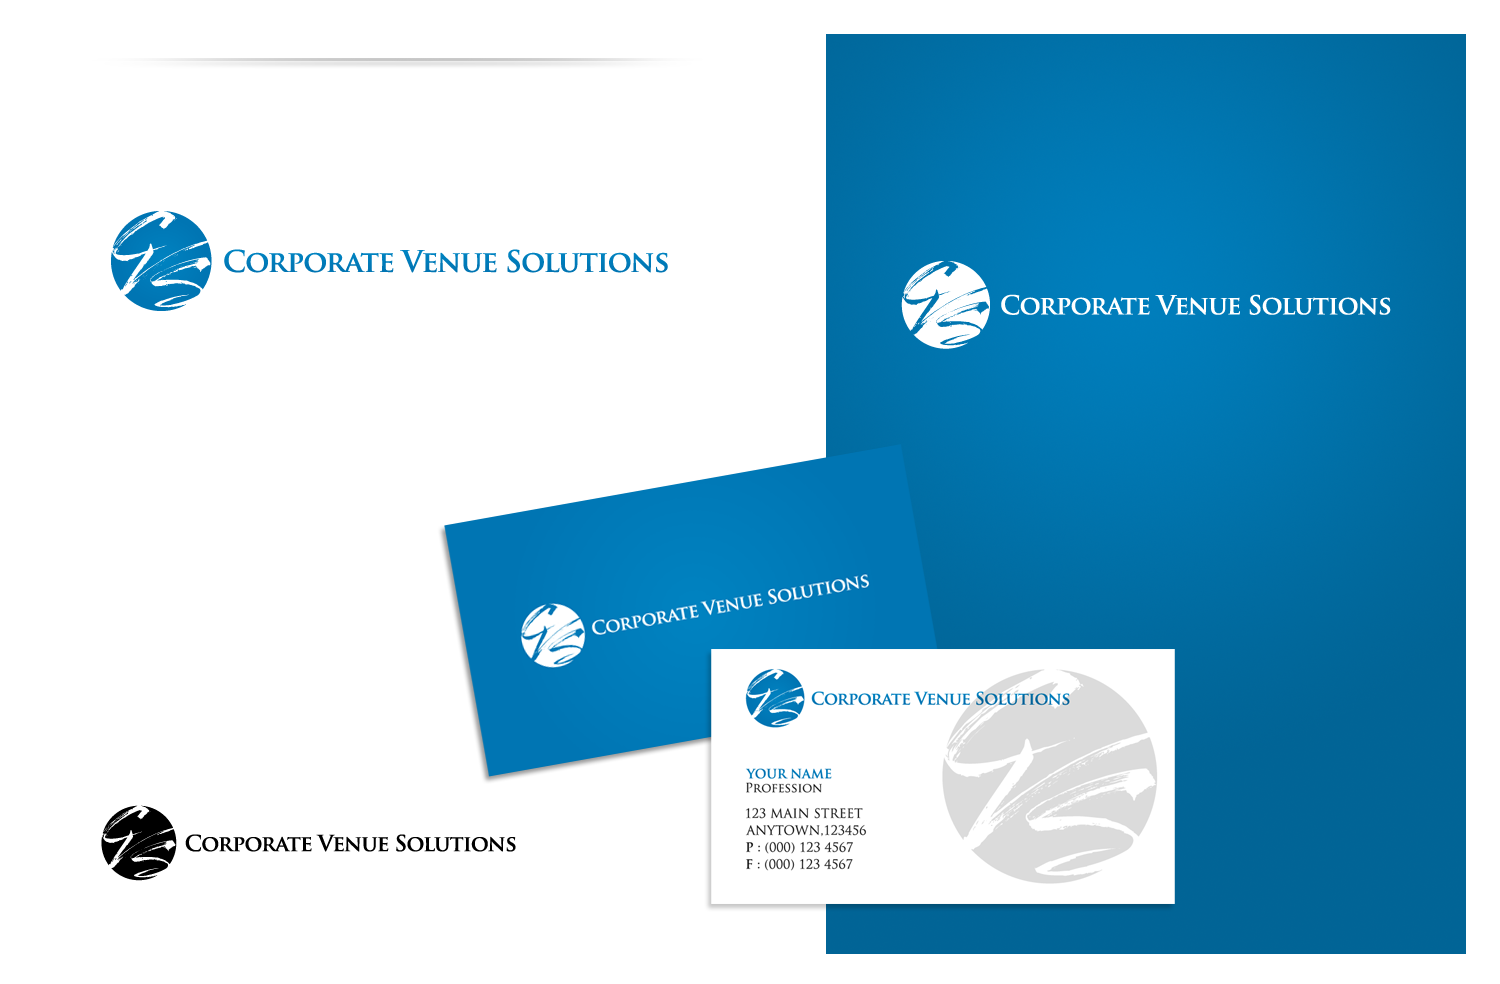 Corporate Venue Solutions needs a new logo